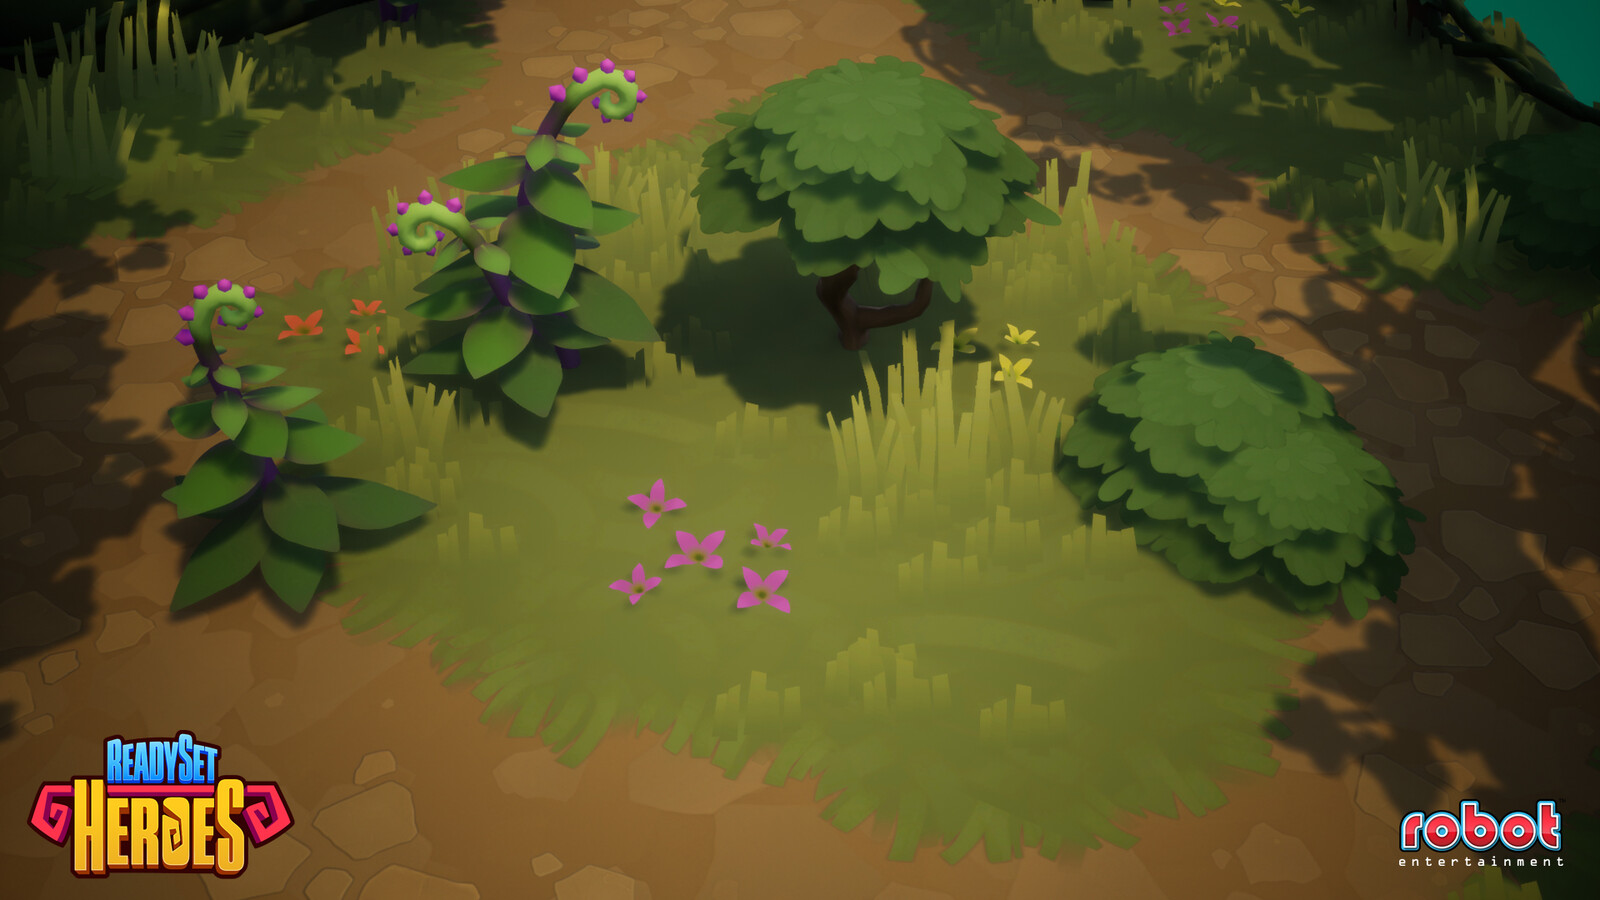 Foliage I created for the Woodlands art set.  Modeled in 3DS Max and Zbrush, textured in Substance Painter.